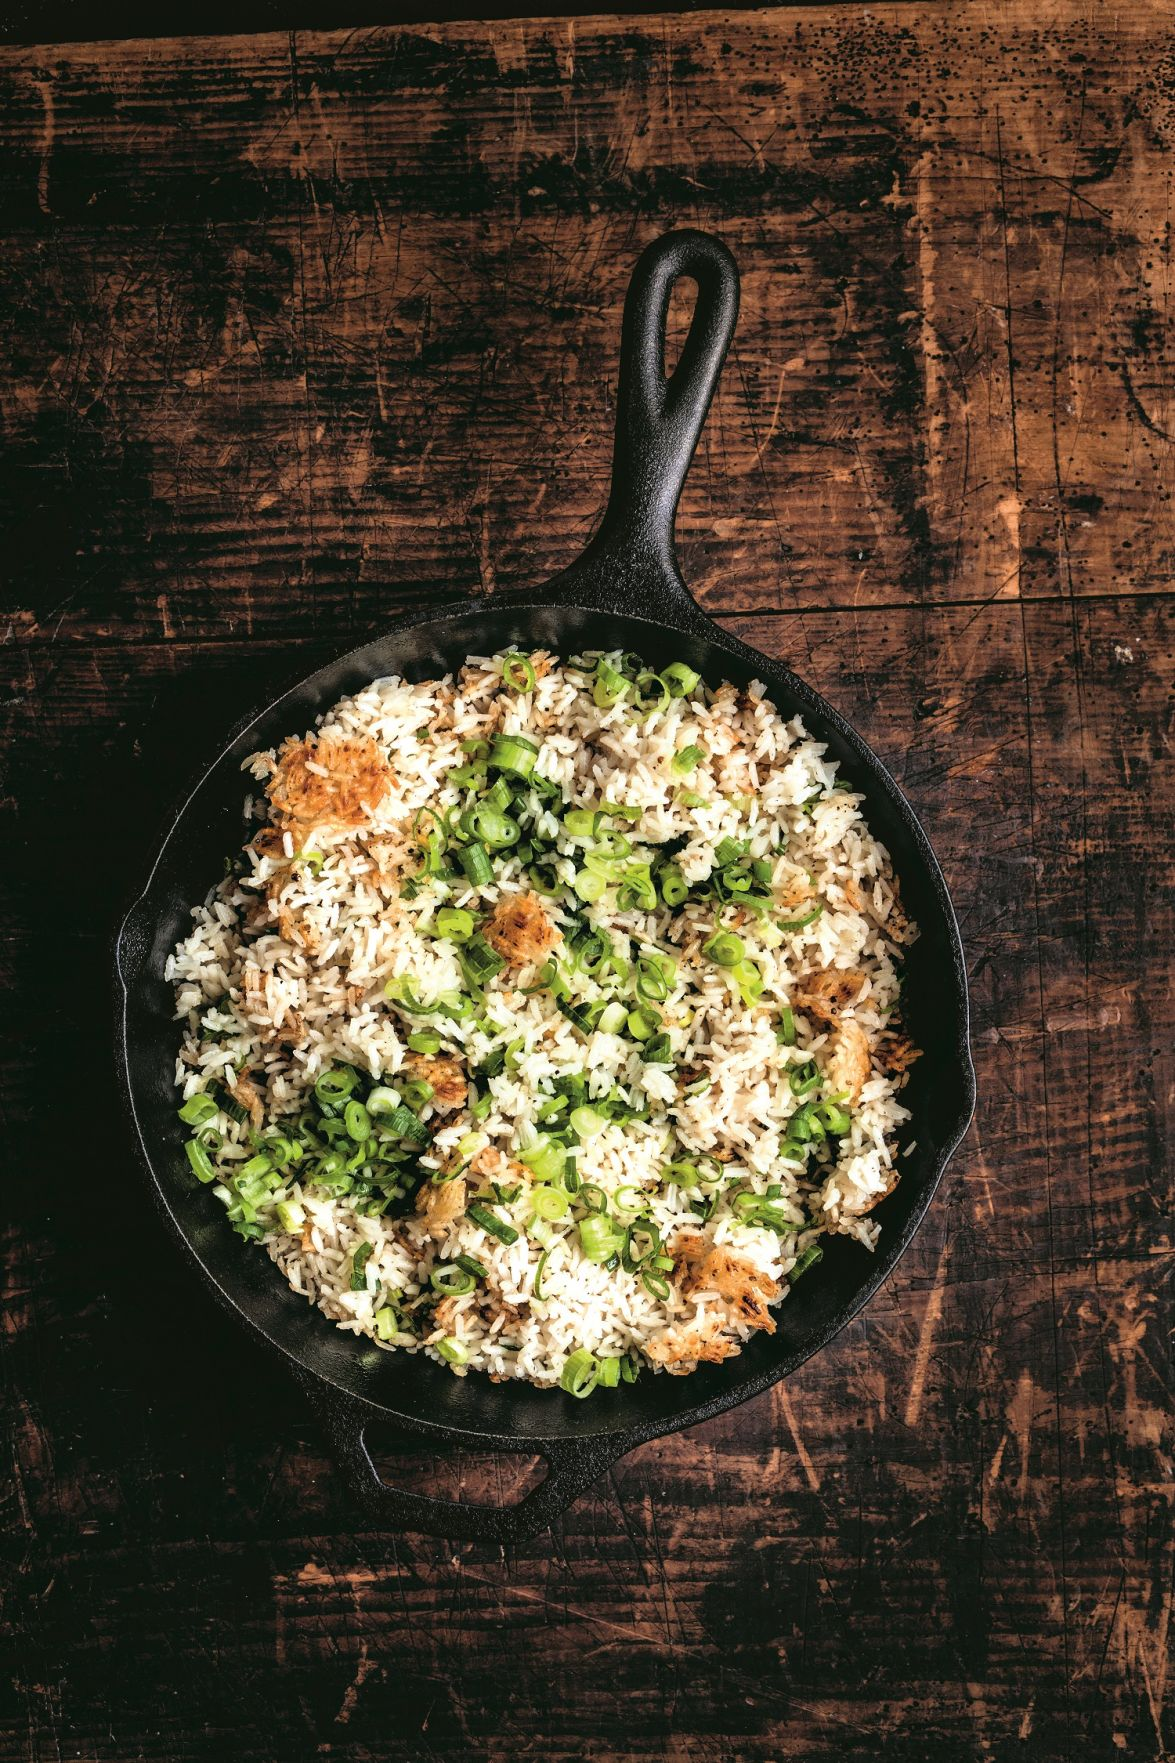 Scallion rice